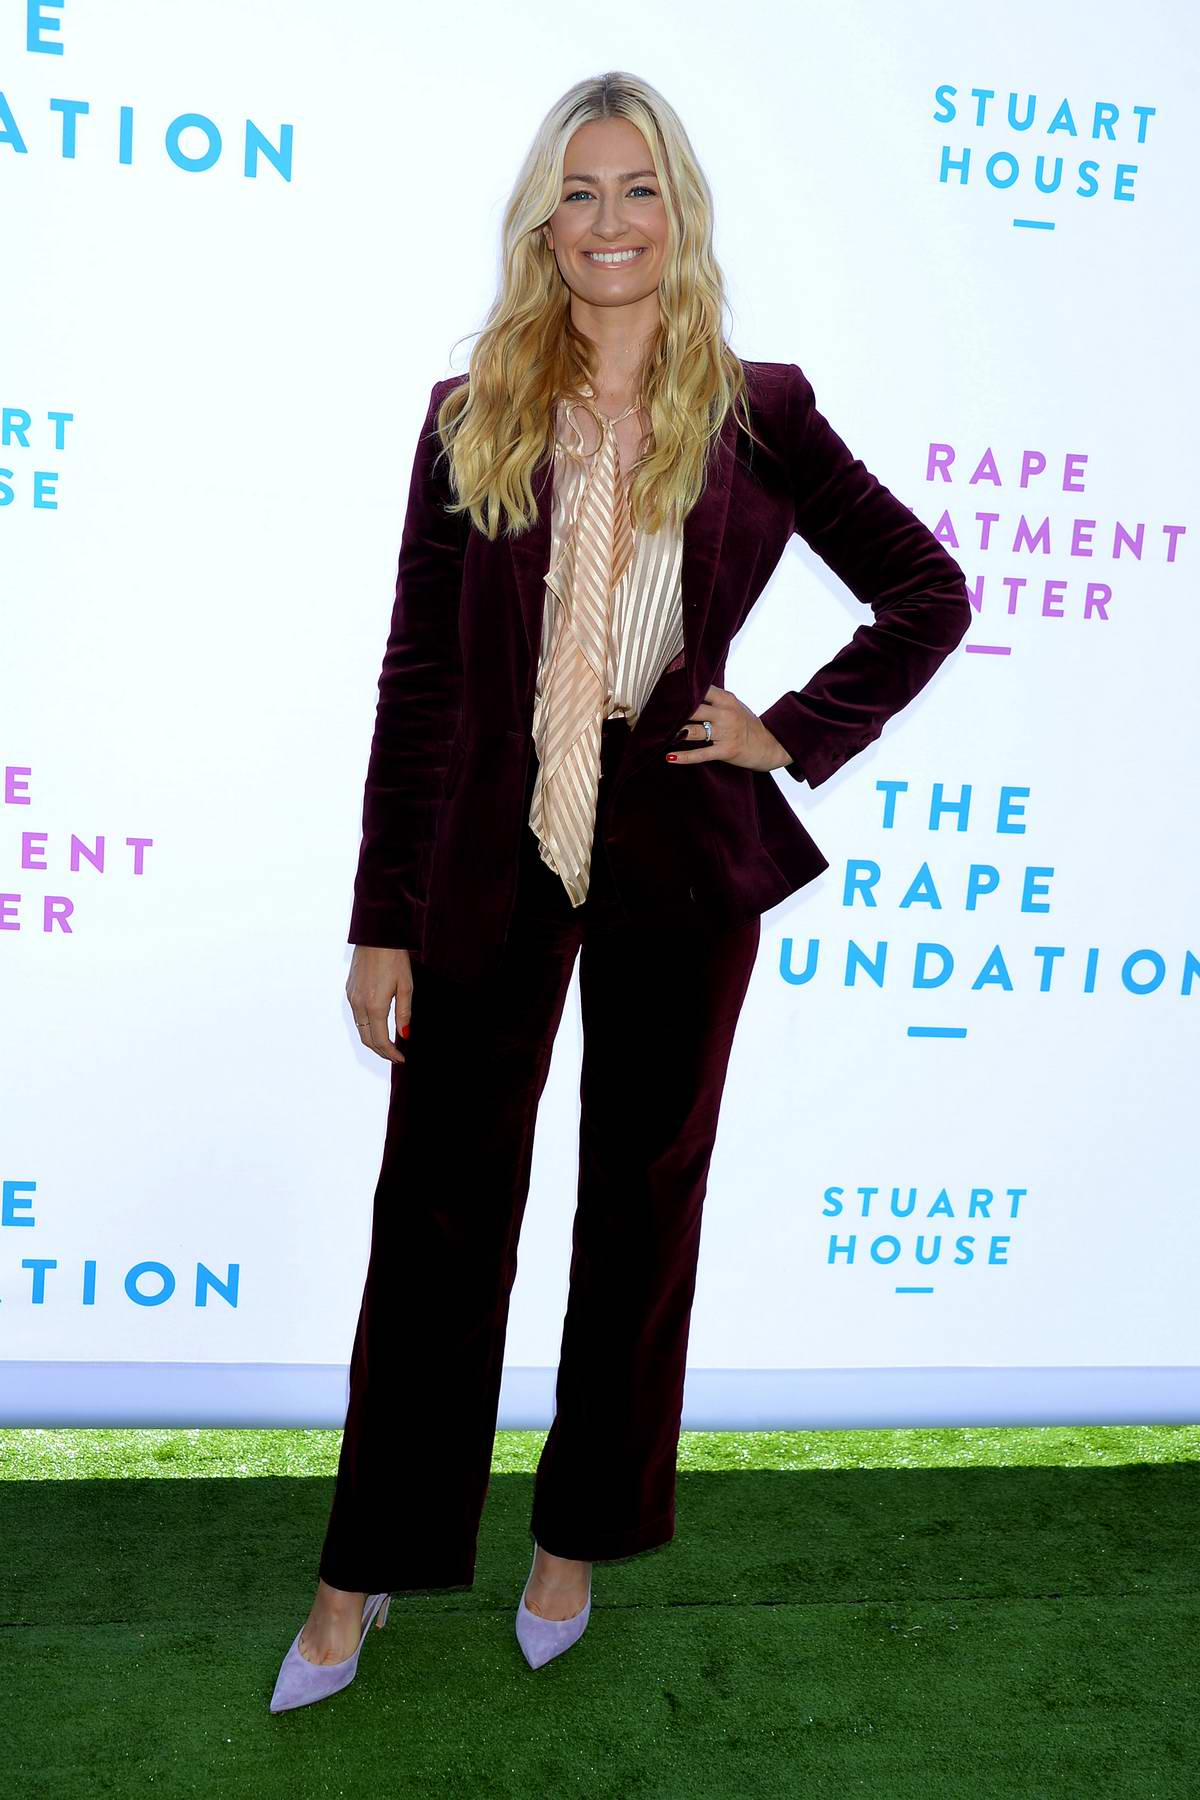 Beth Behrs attends The Rape Foundation's Annual Brunch in Beverly Hills, Los Angeles